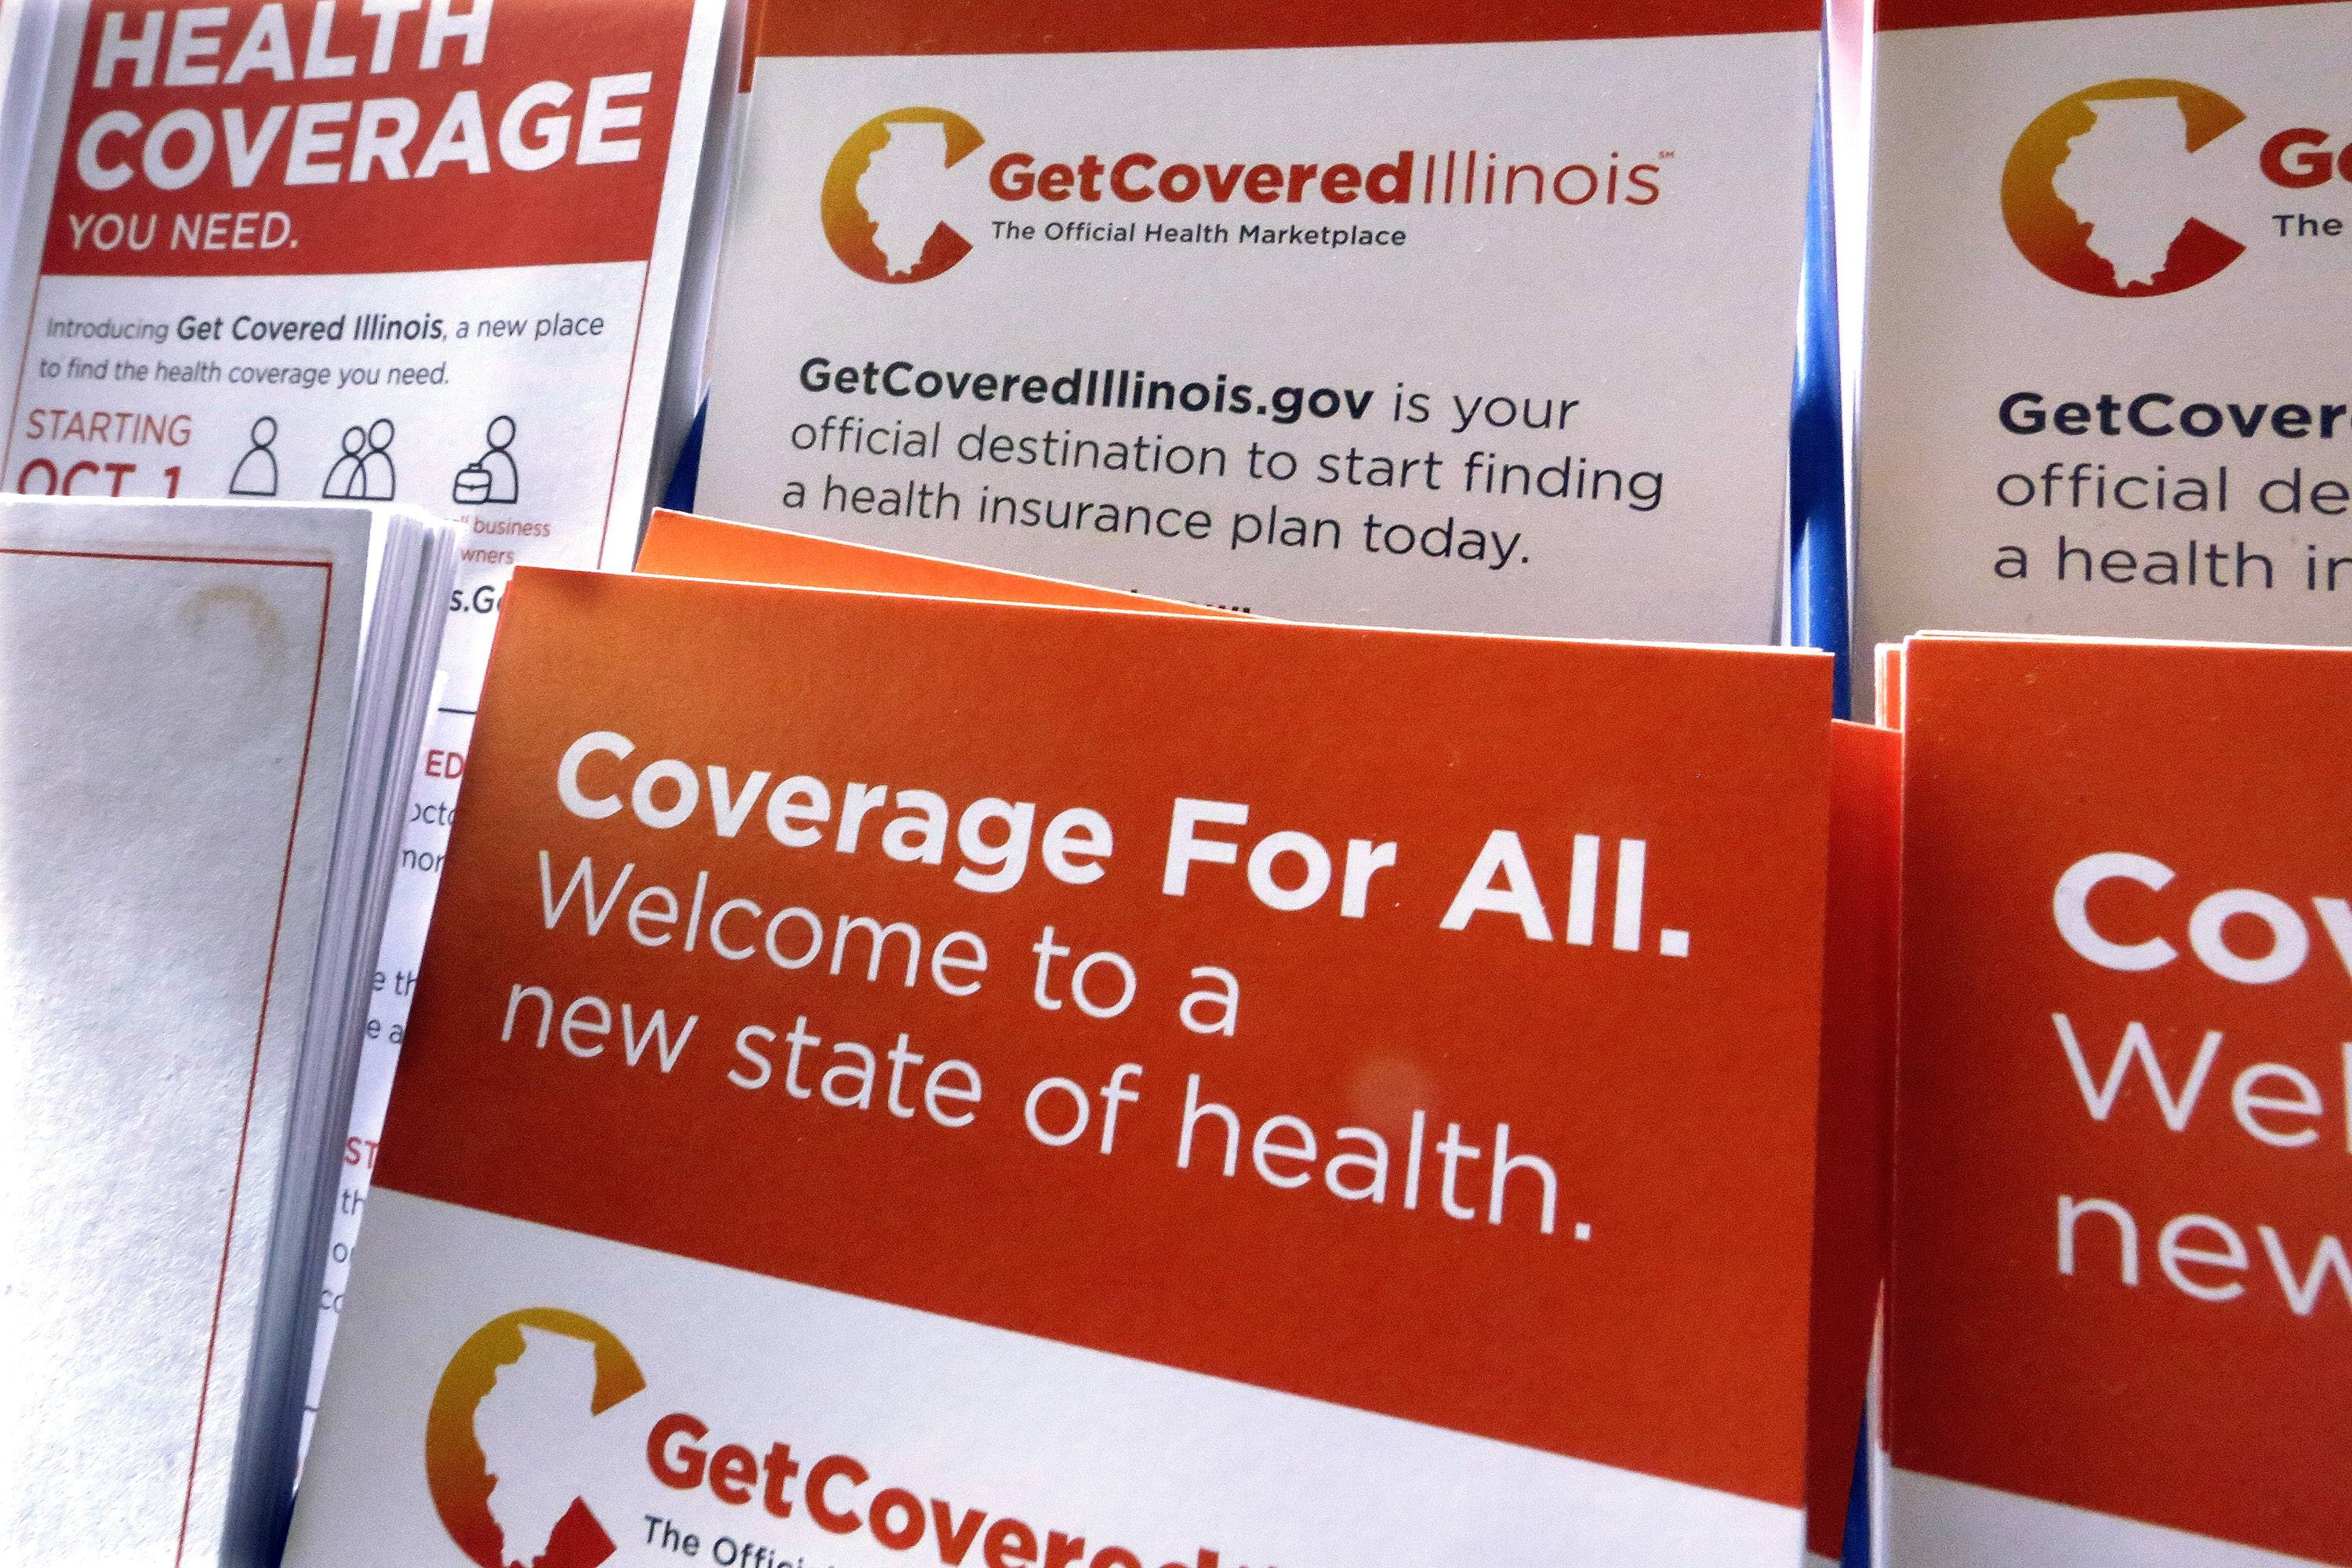 People who don't have health insurance have until midnight Monday to enroll or else they'll face federal tax penalties under the Affordable Care Act.